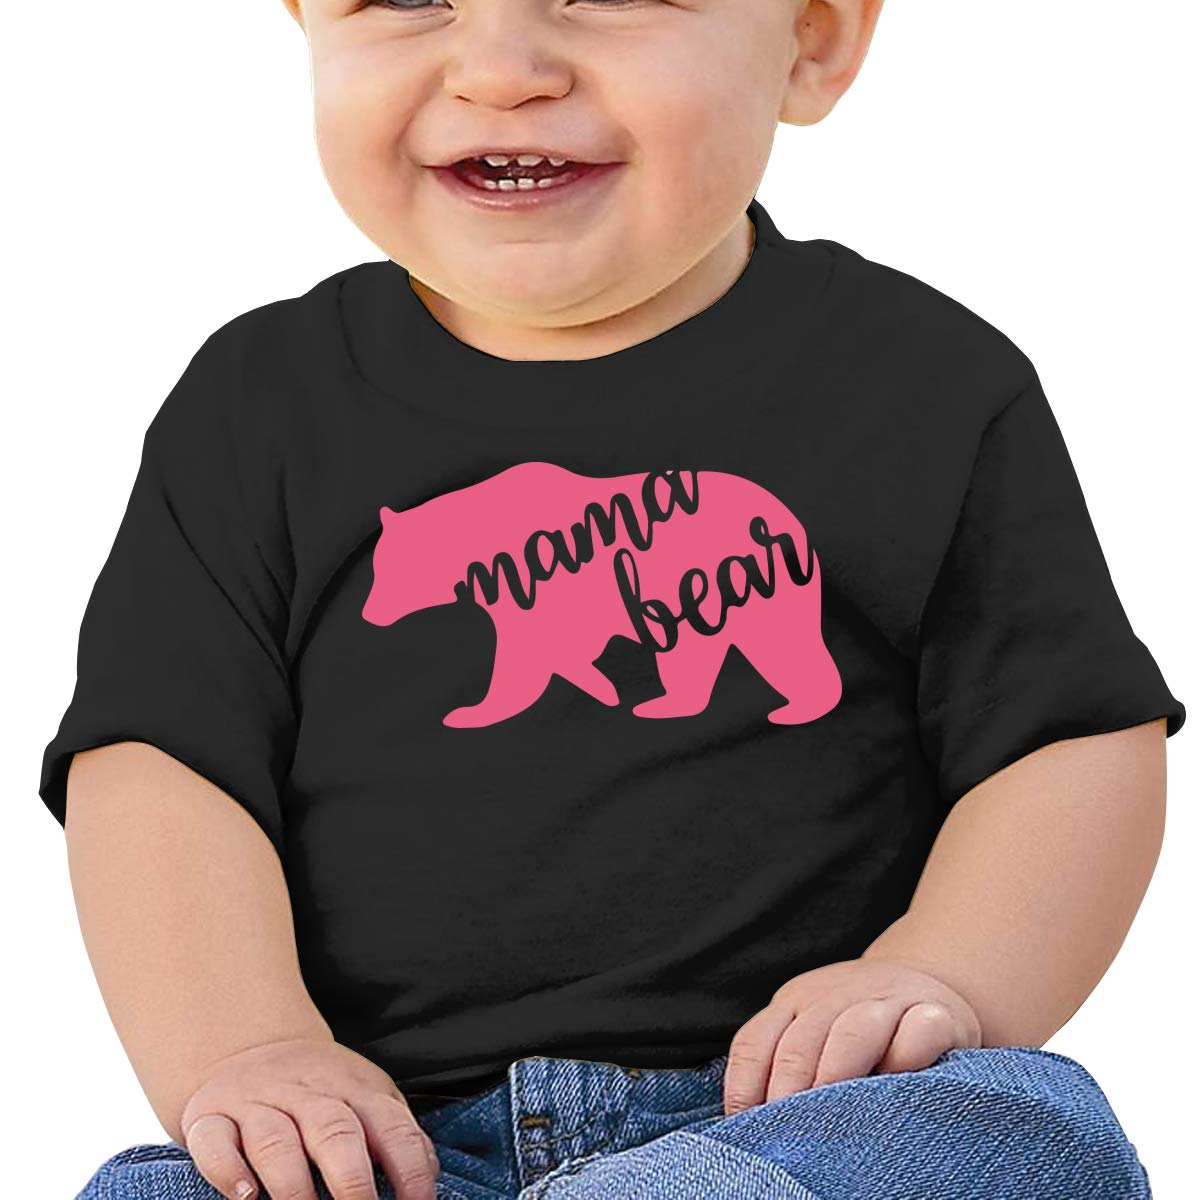 Pink Mama Bear Baby T-Shirt Toddler Cotton T Shirts Comfort Tee Shirts for 6M-2T Baby